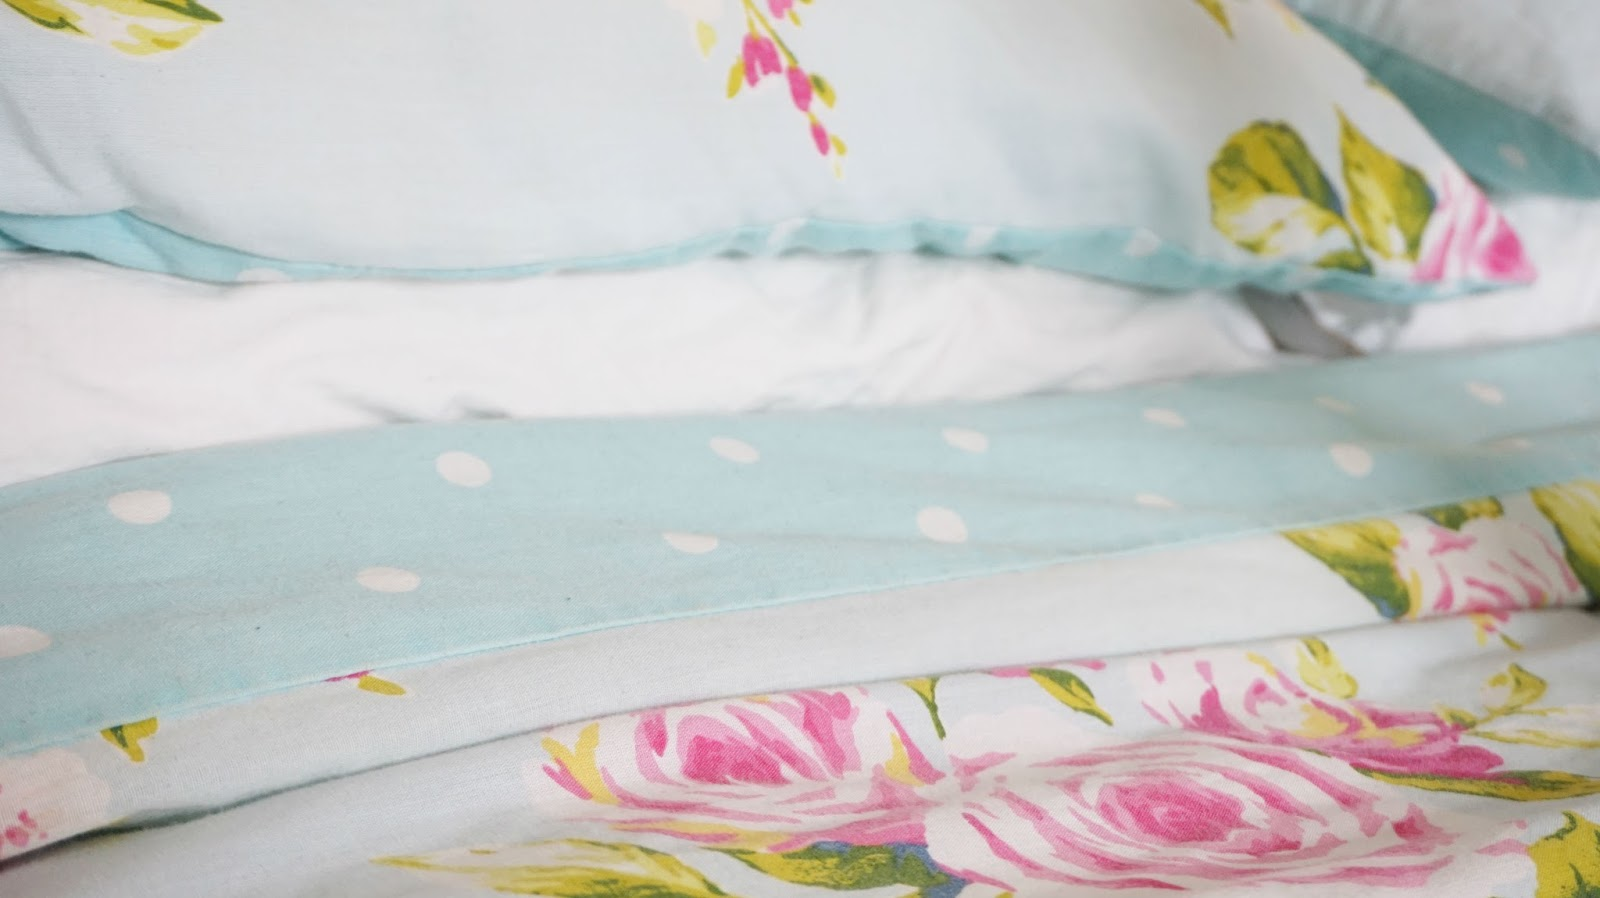 a splash of blue for summer spring decor interior yorkshire linen ad blue white grey floral update your bedroom for summer sunshine